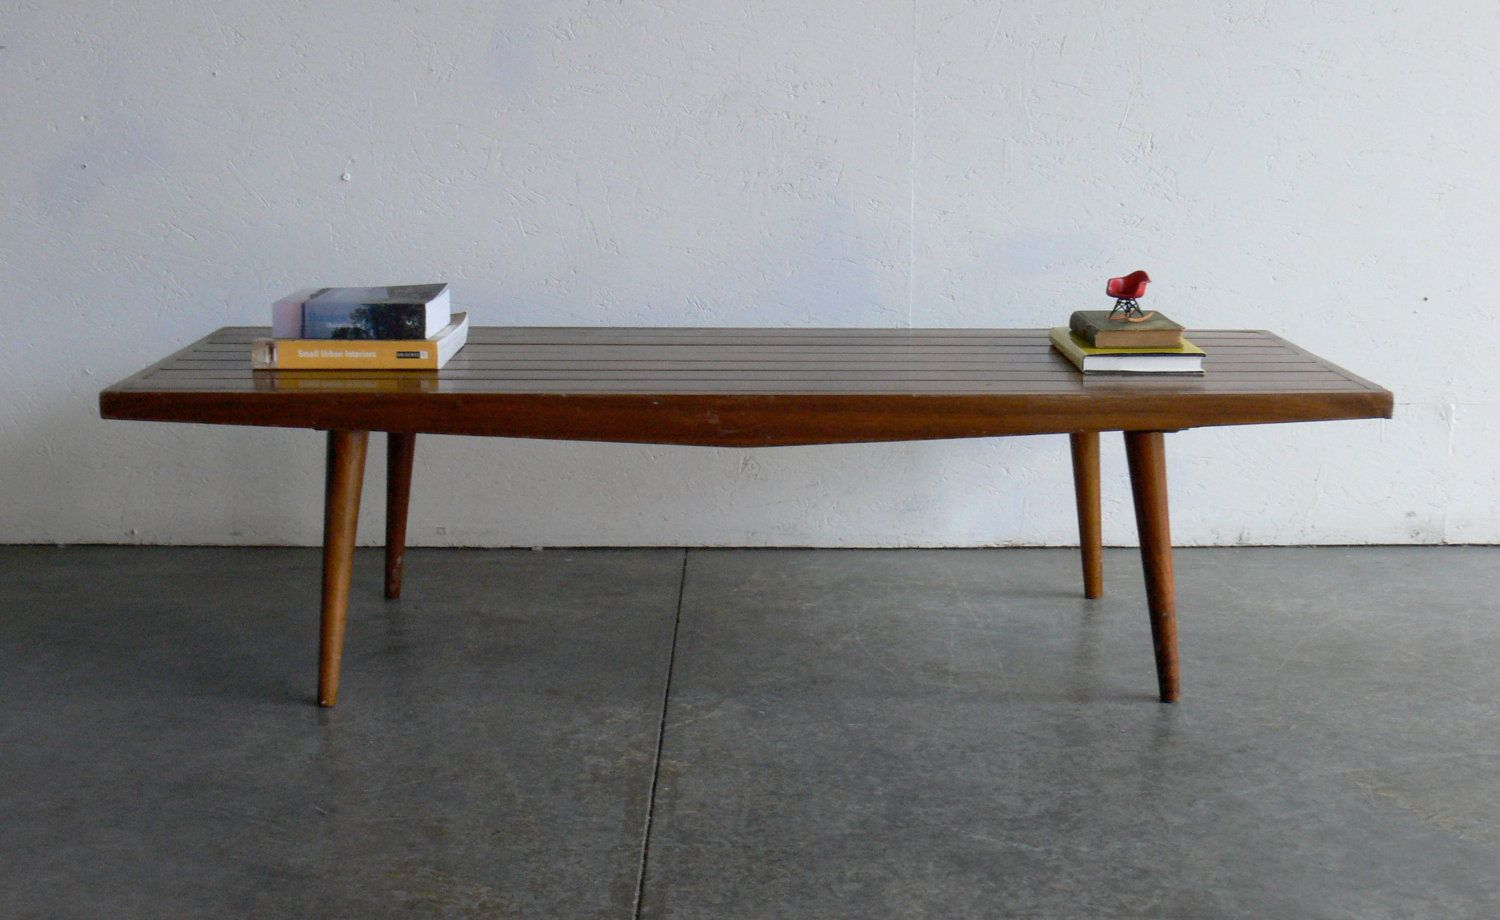 Vintage Mid Century Modern Coffee Table Bench Etsy Mid Century Modern Coffee Table Mid Century Coffee Table Coffee Table [ 920 x 1500 Pixel ]